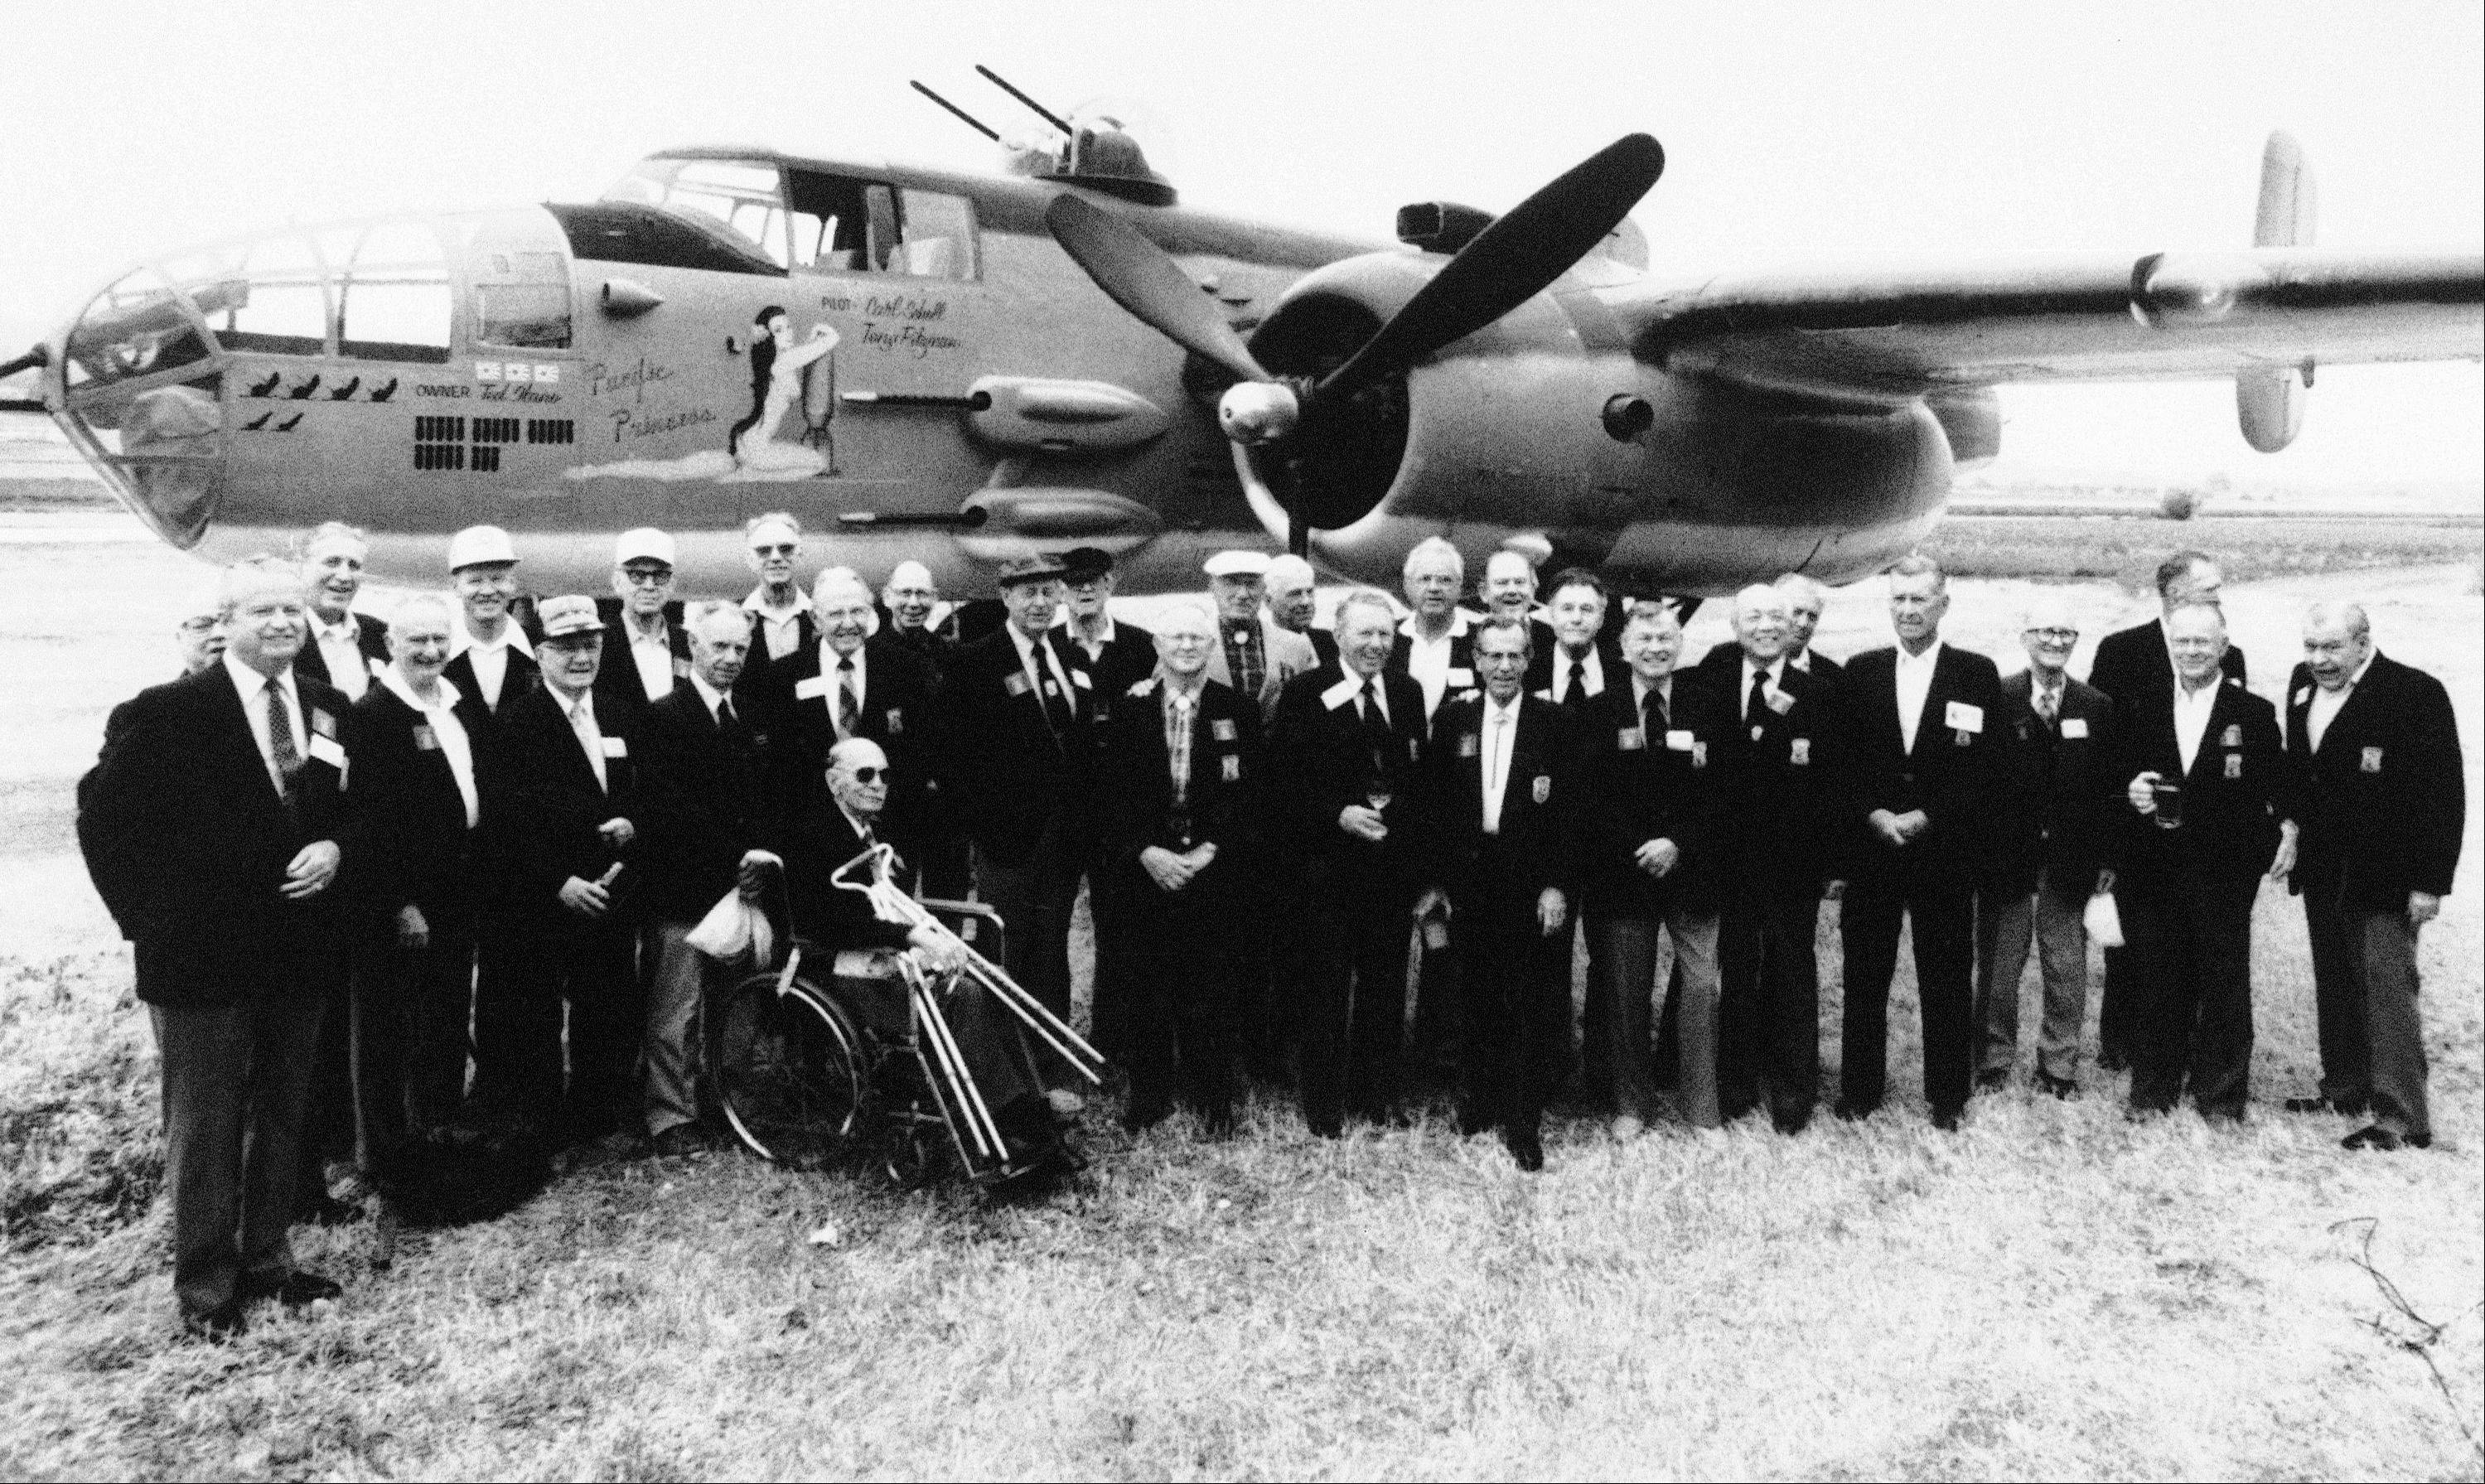 Thirty members of Jimmy Doolittle's Tokyo Raiders pose for a group picture in front of a B-25J bomber in Torrance, Calif., as they gather for a reunion.